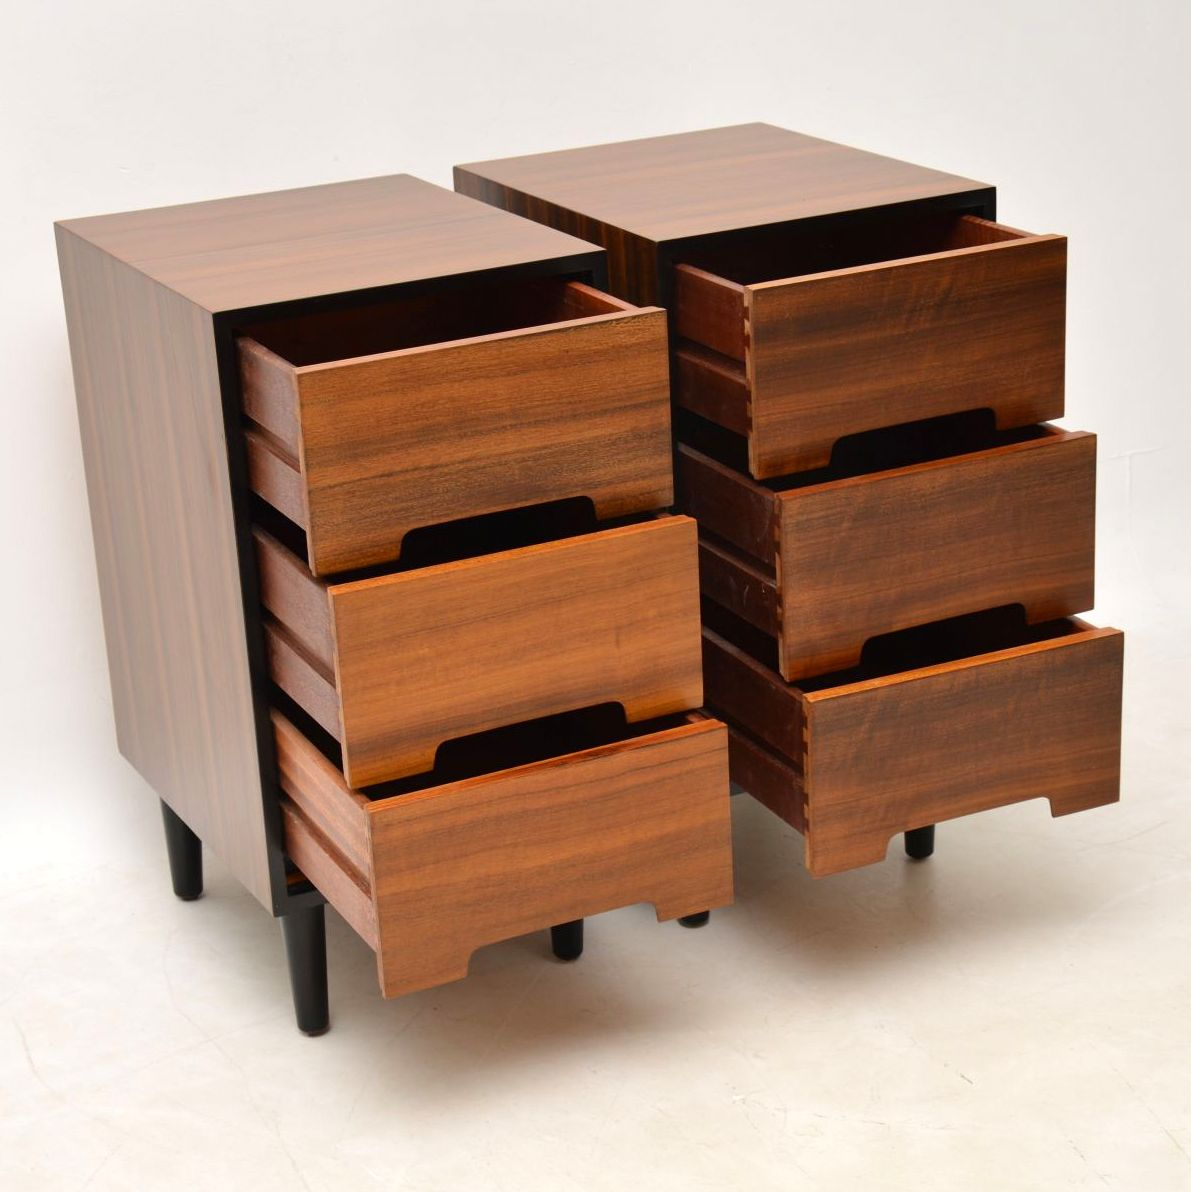 pair_of_walnut_bedside_chests_john_sylvia_reid_stag_7